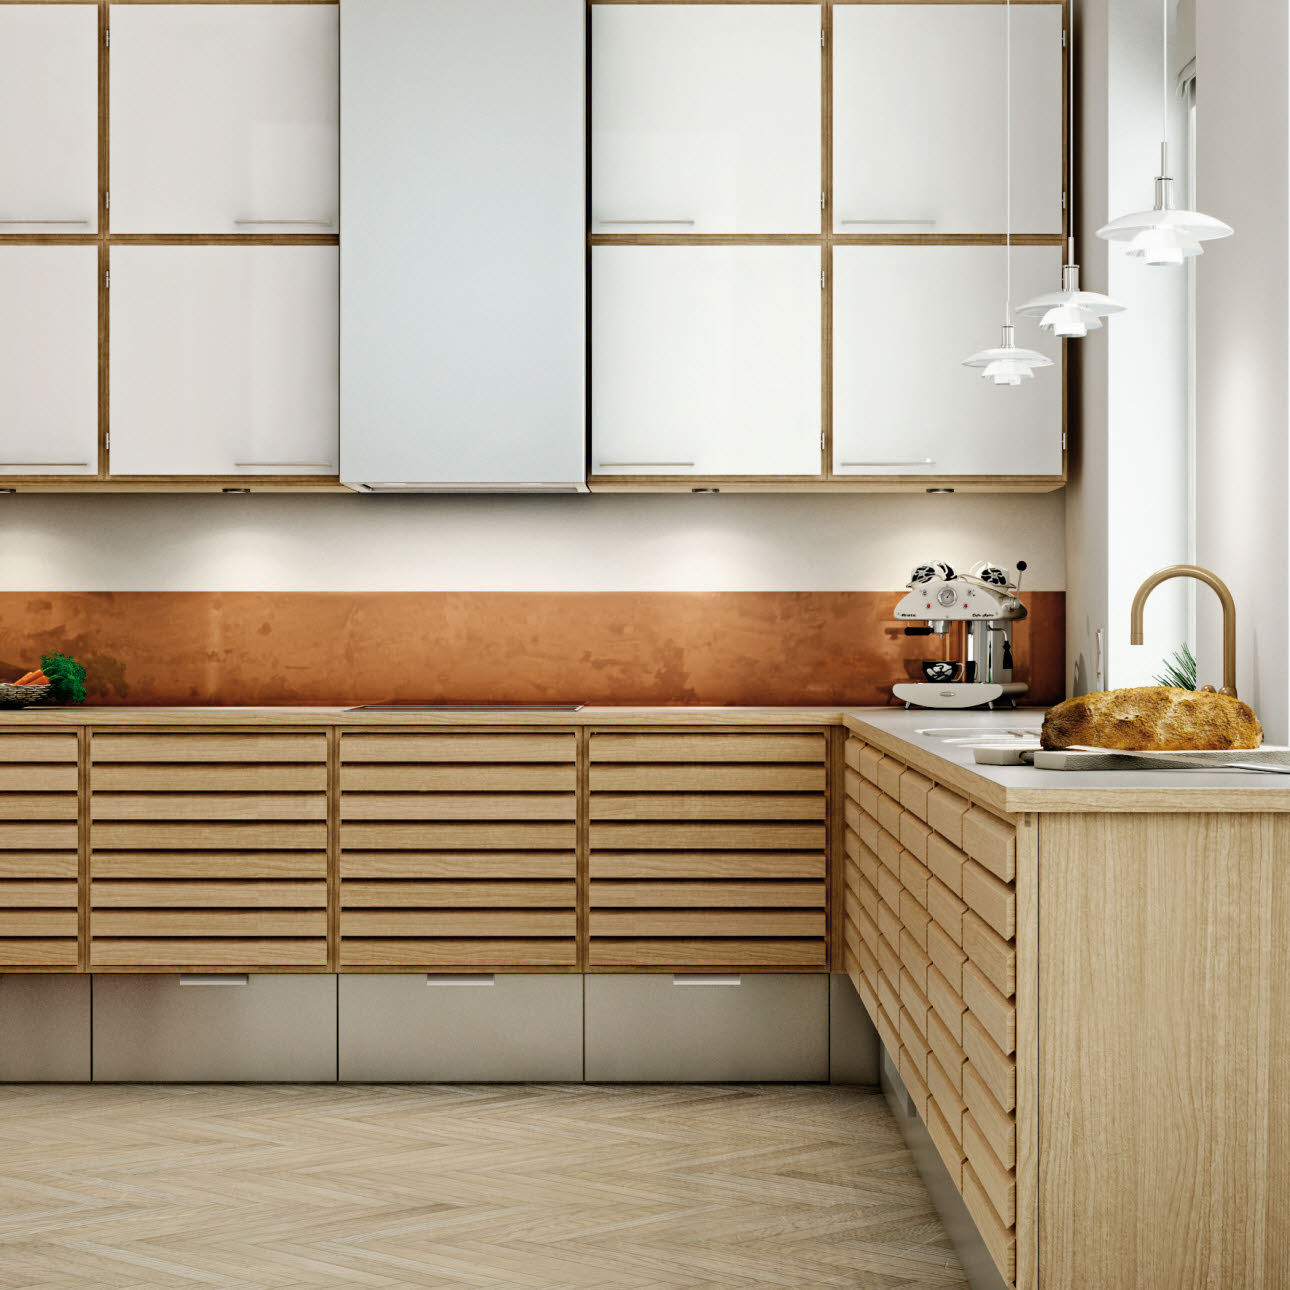 Designer kitchen in oak